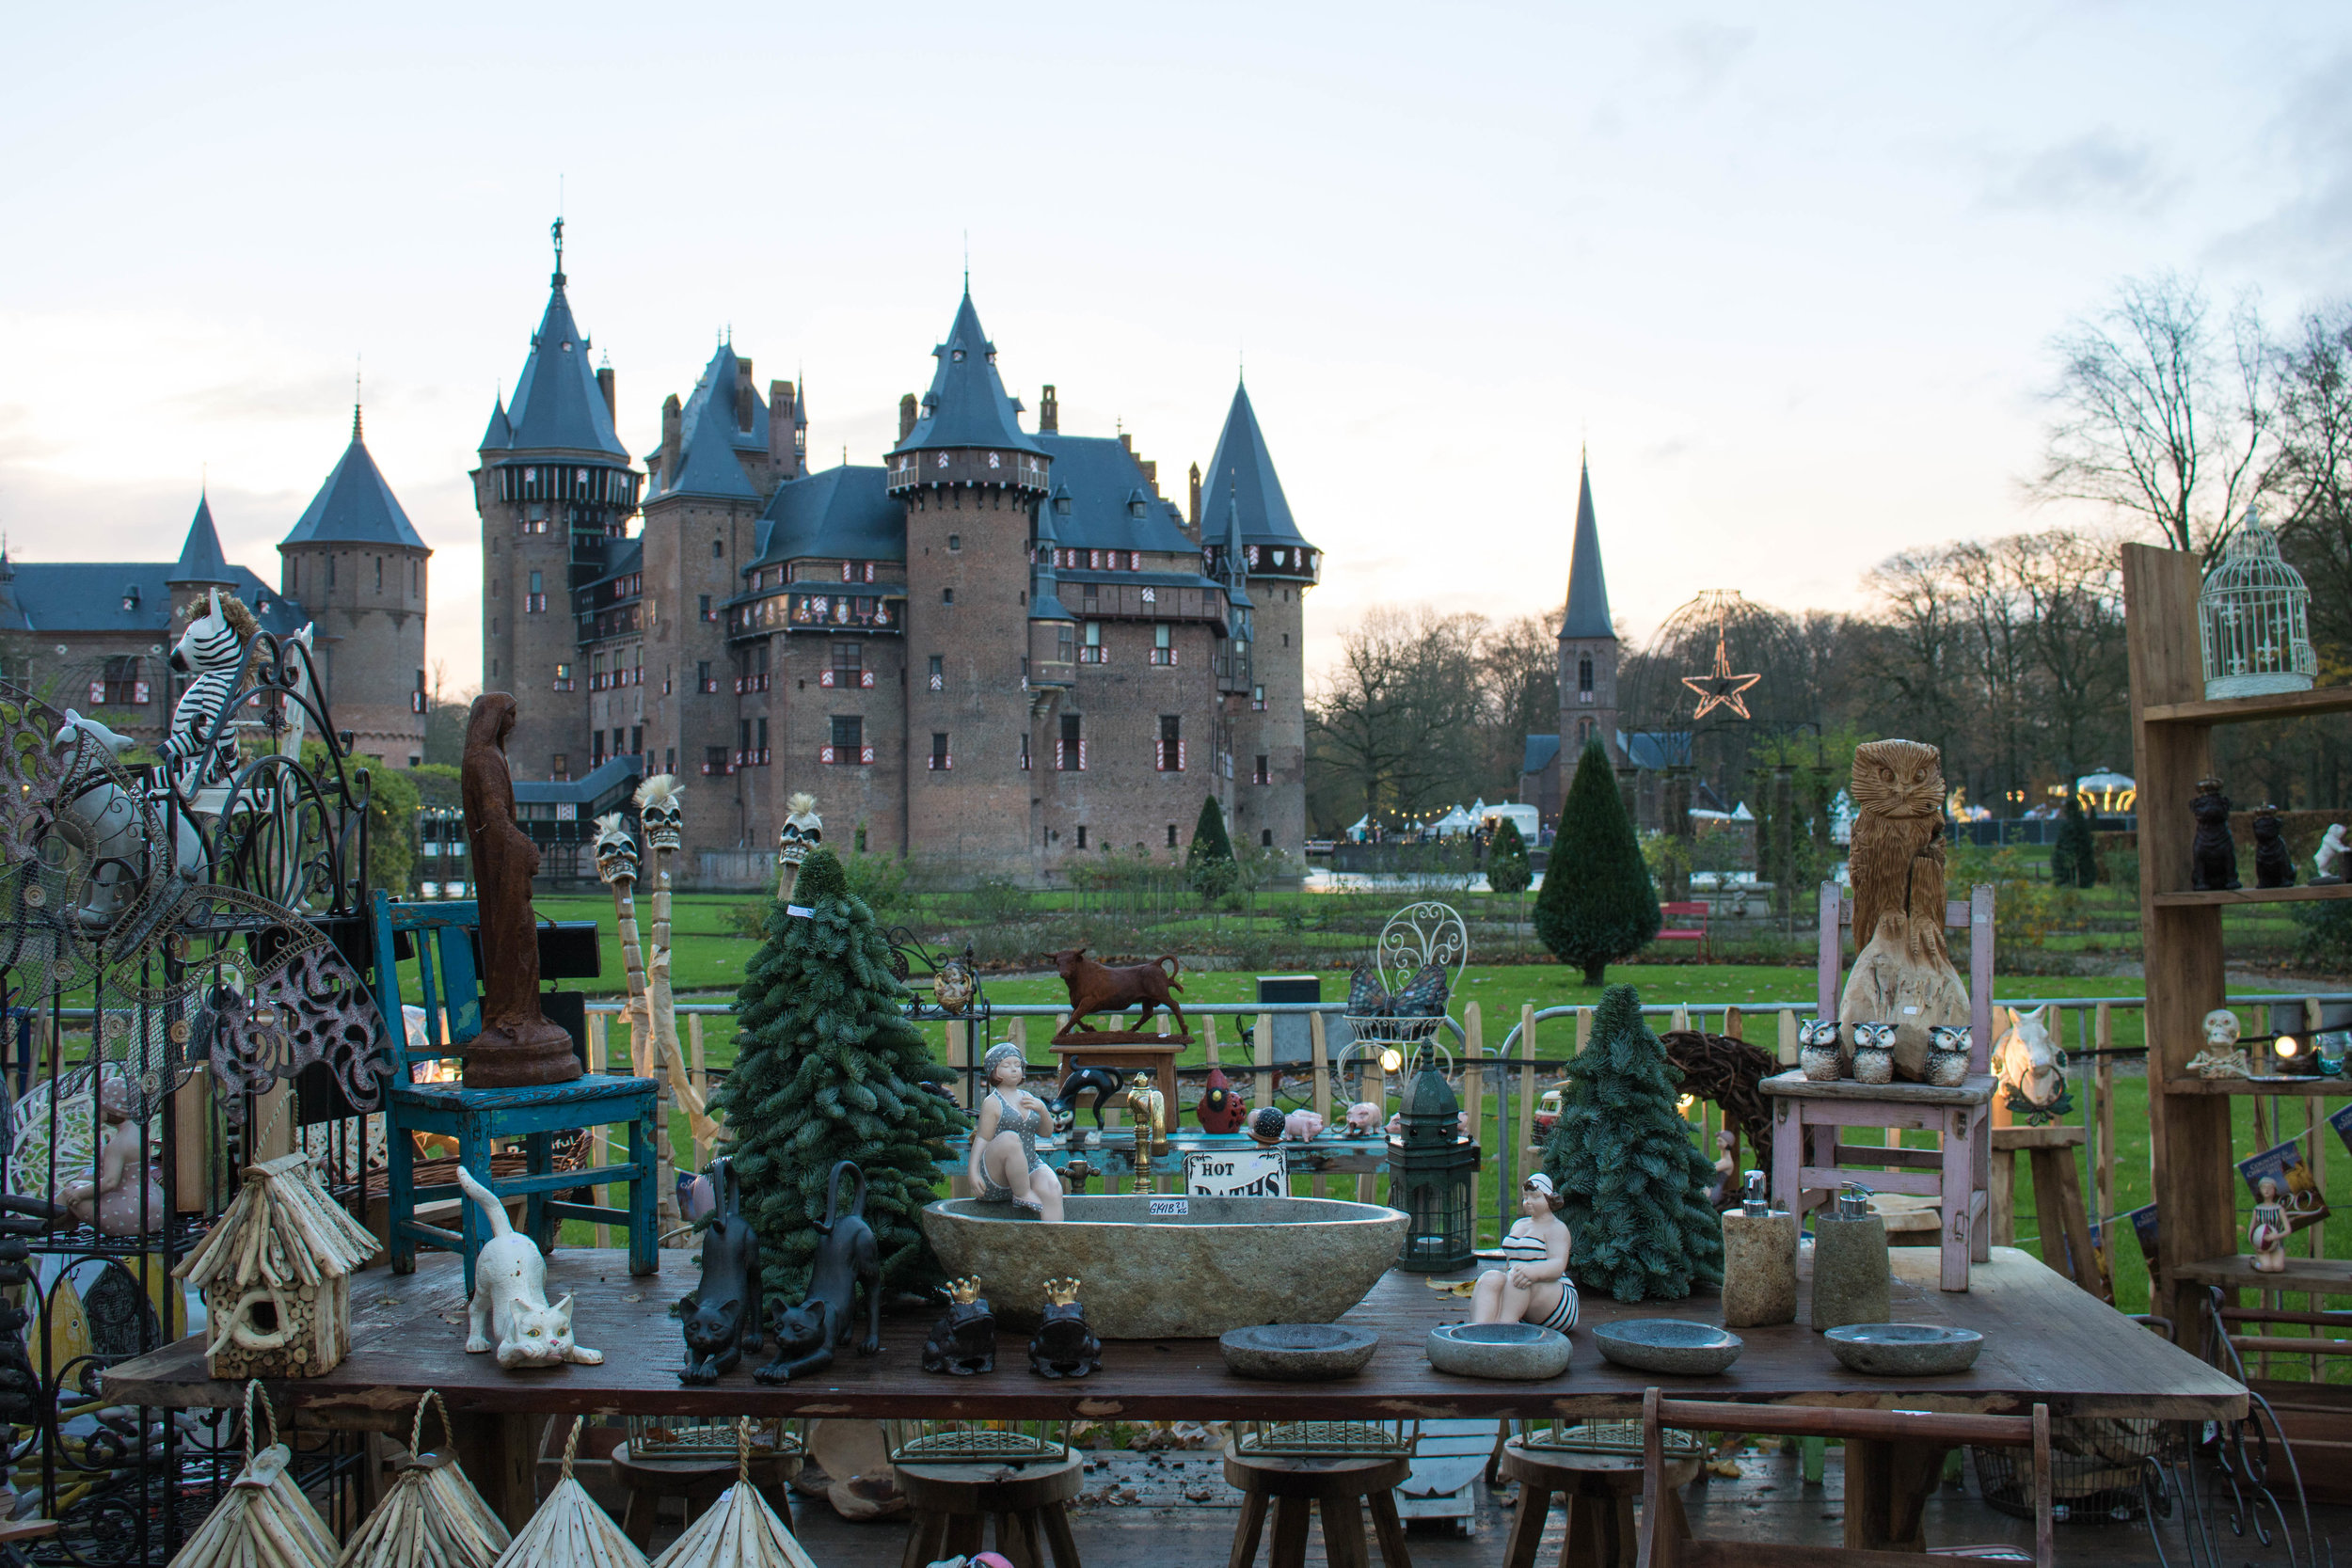 Fairy tale view of the castle.